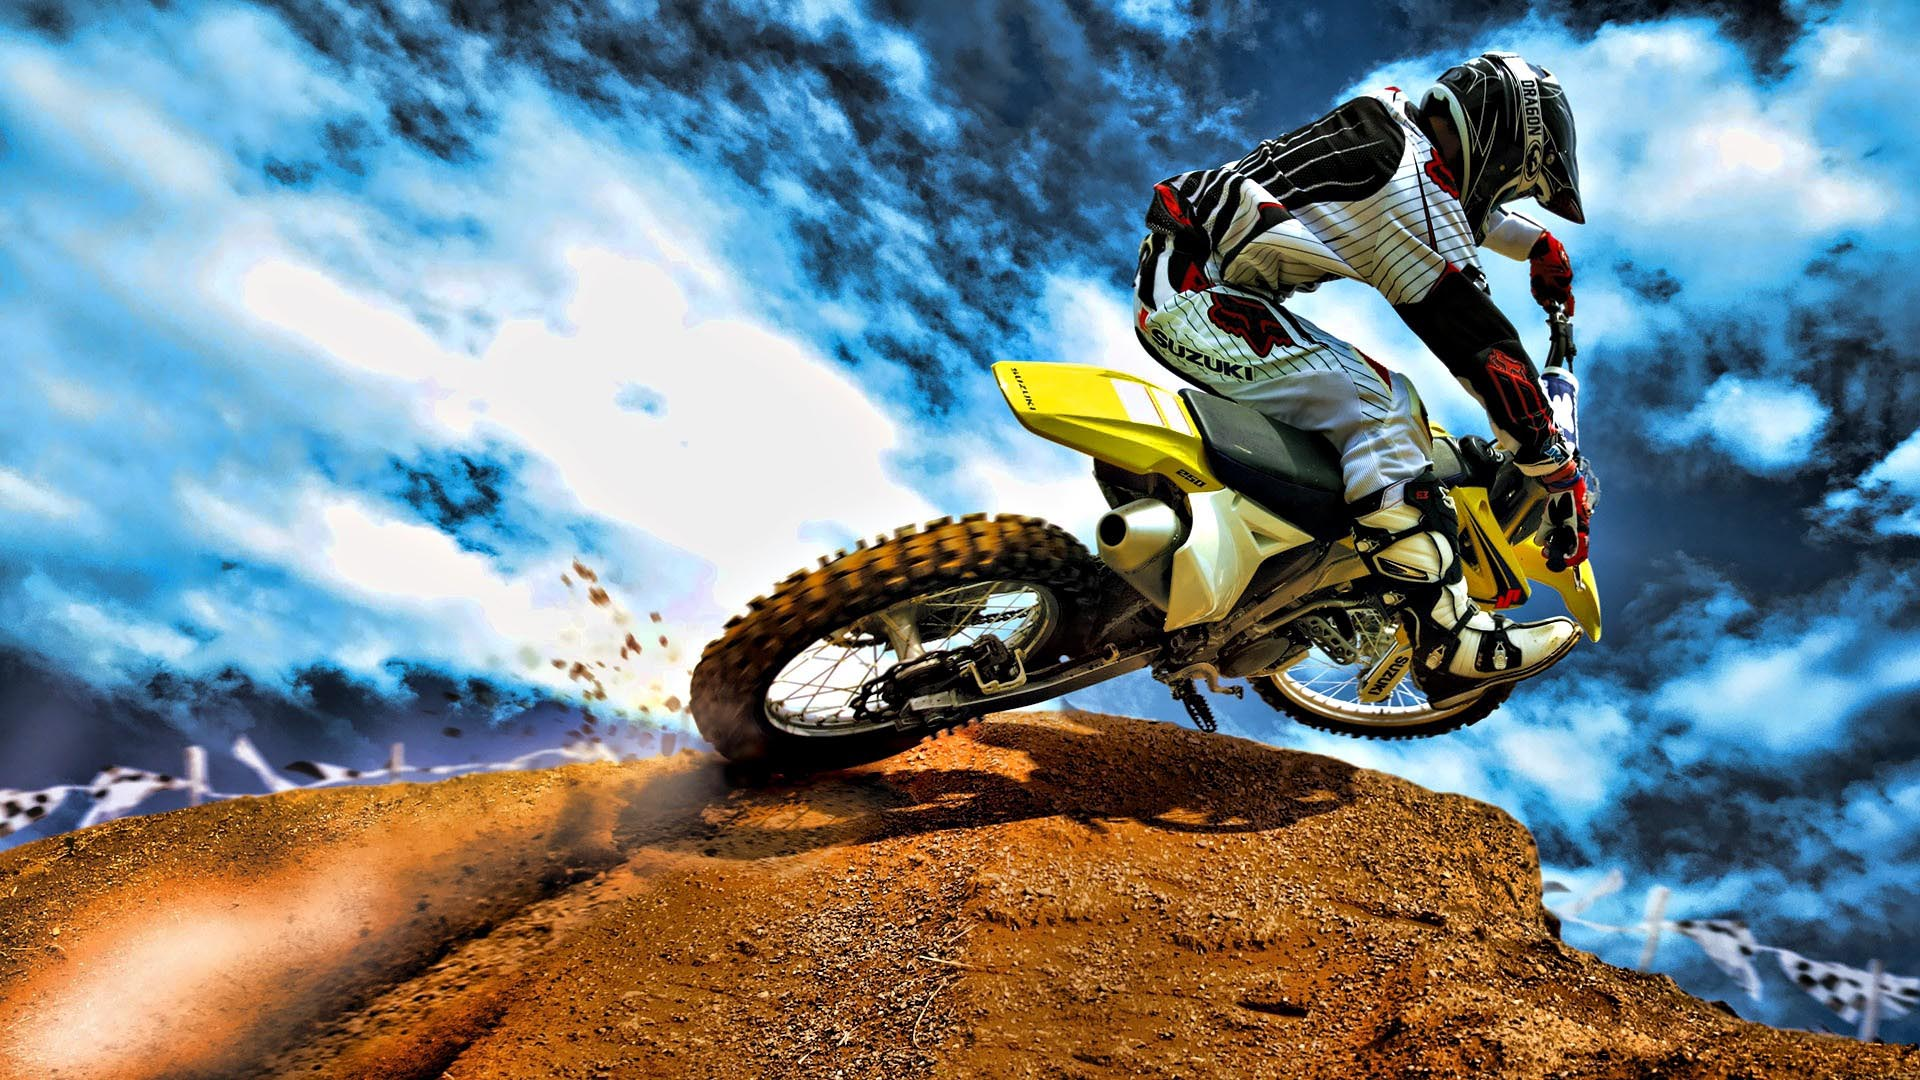 Motocross HDR Bike HD Wallpaper FullHDWpp   Full HD Wallpapers 1920x1080